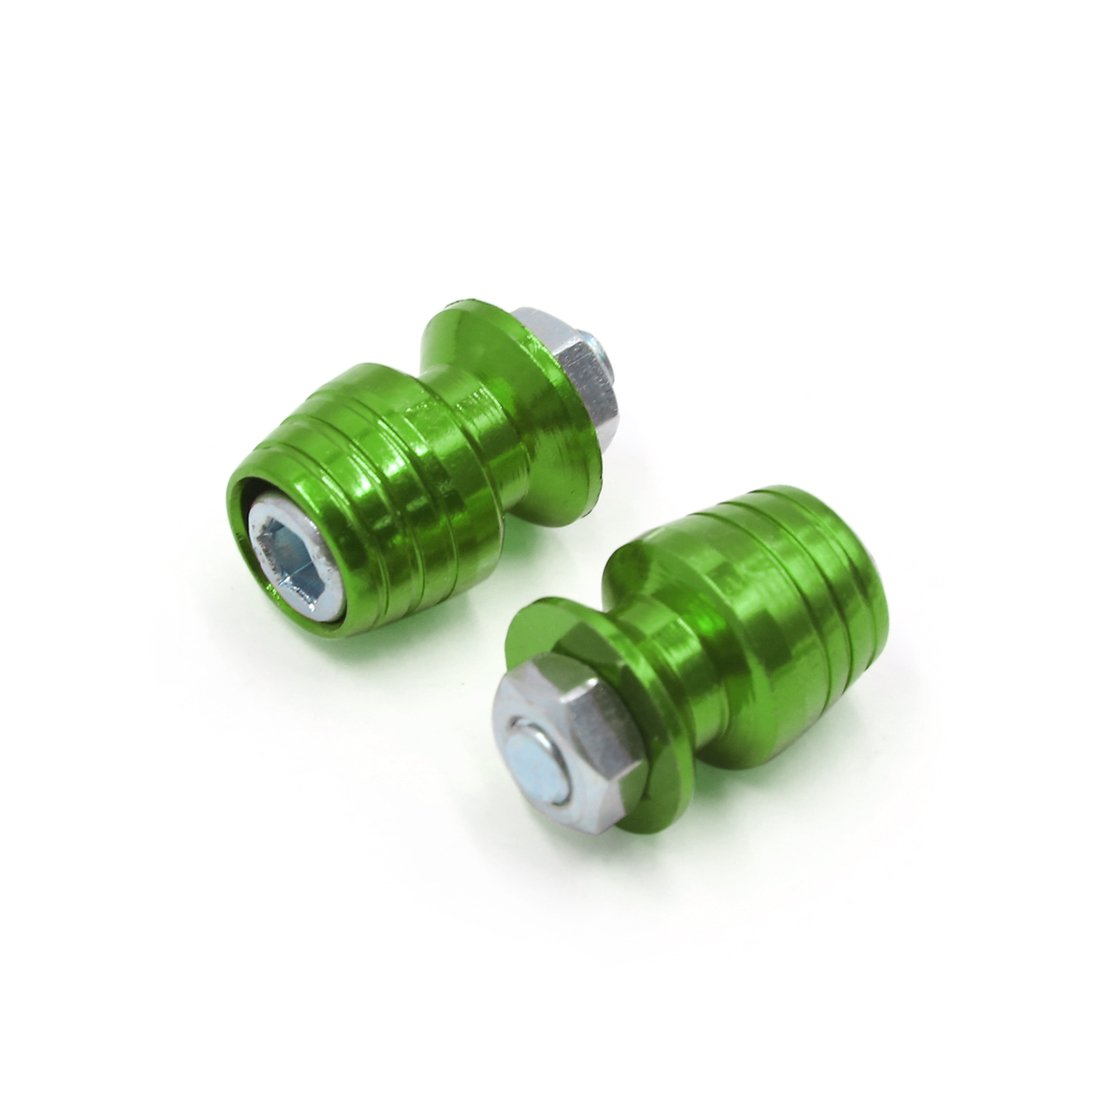 uxcell a17031000ux2080 4Pcs Universal Light Green Metal Motorcycle Conversion License Plate Bolt Screw 4 Pack